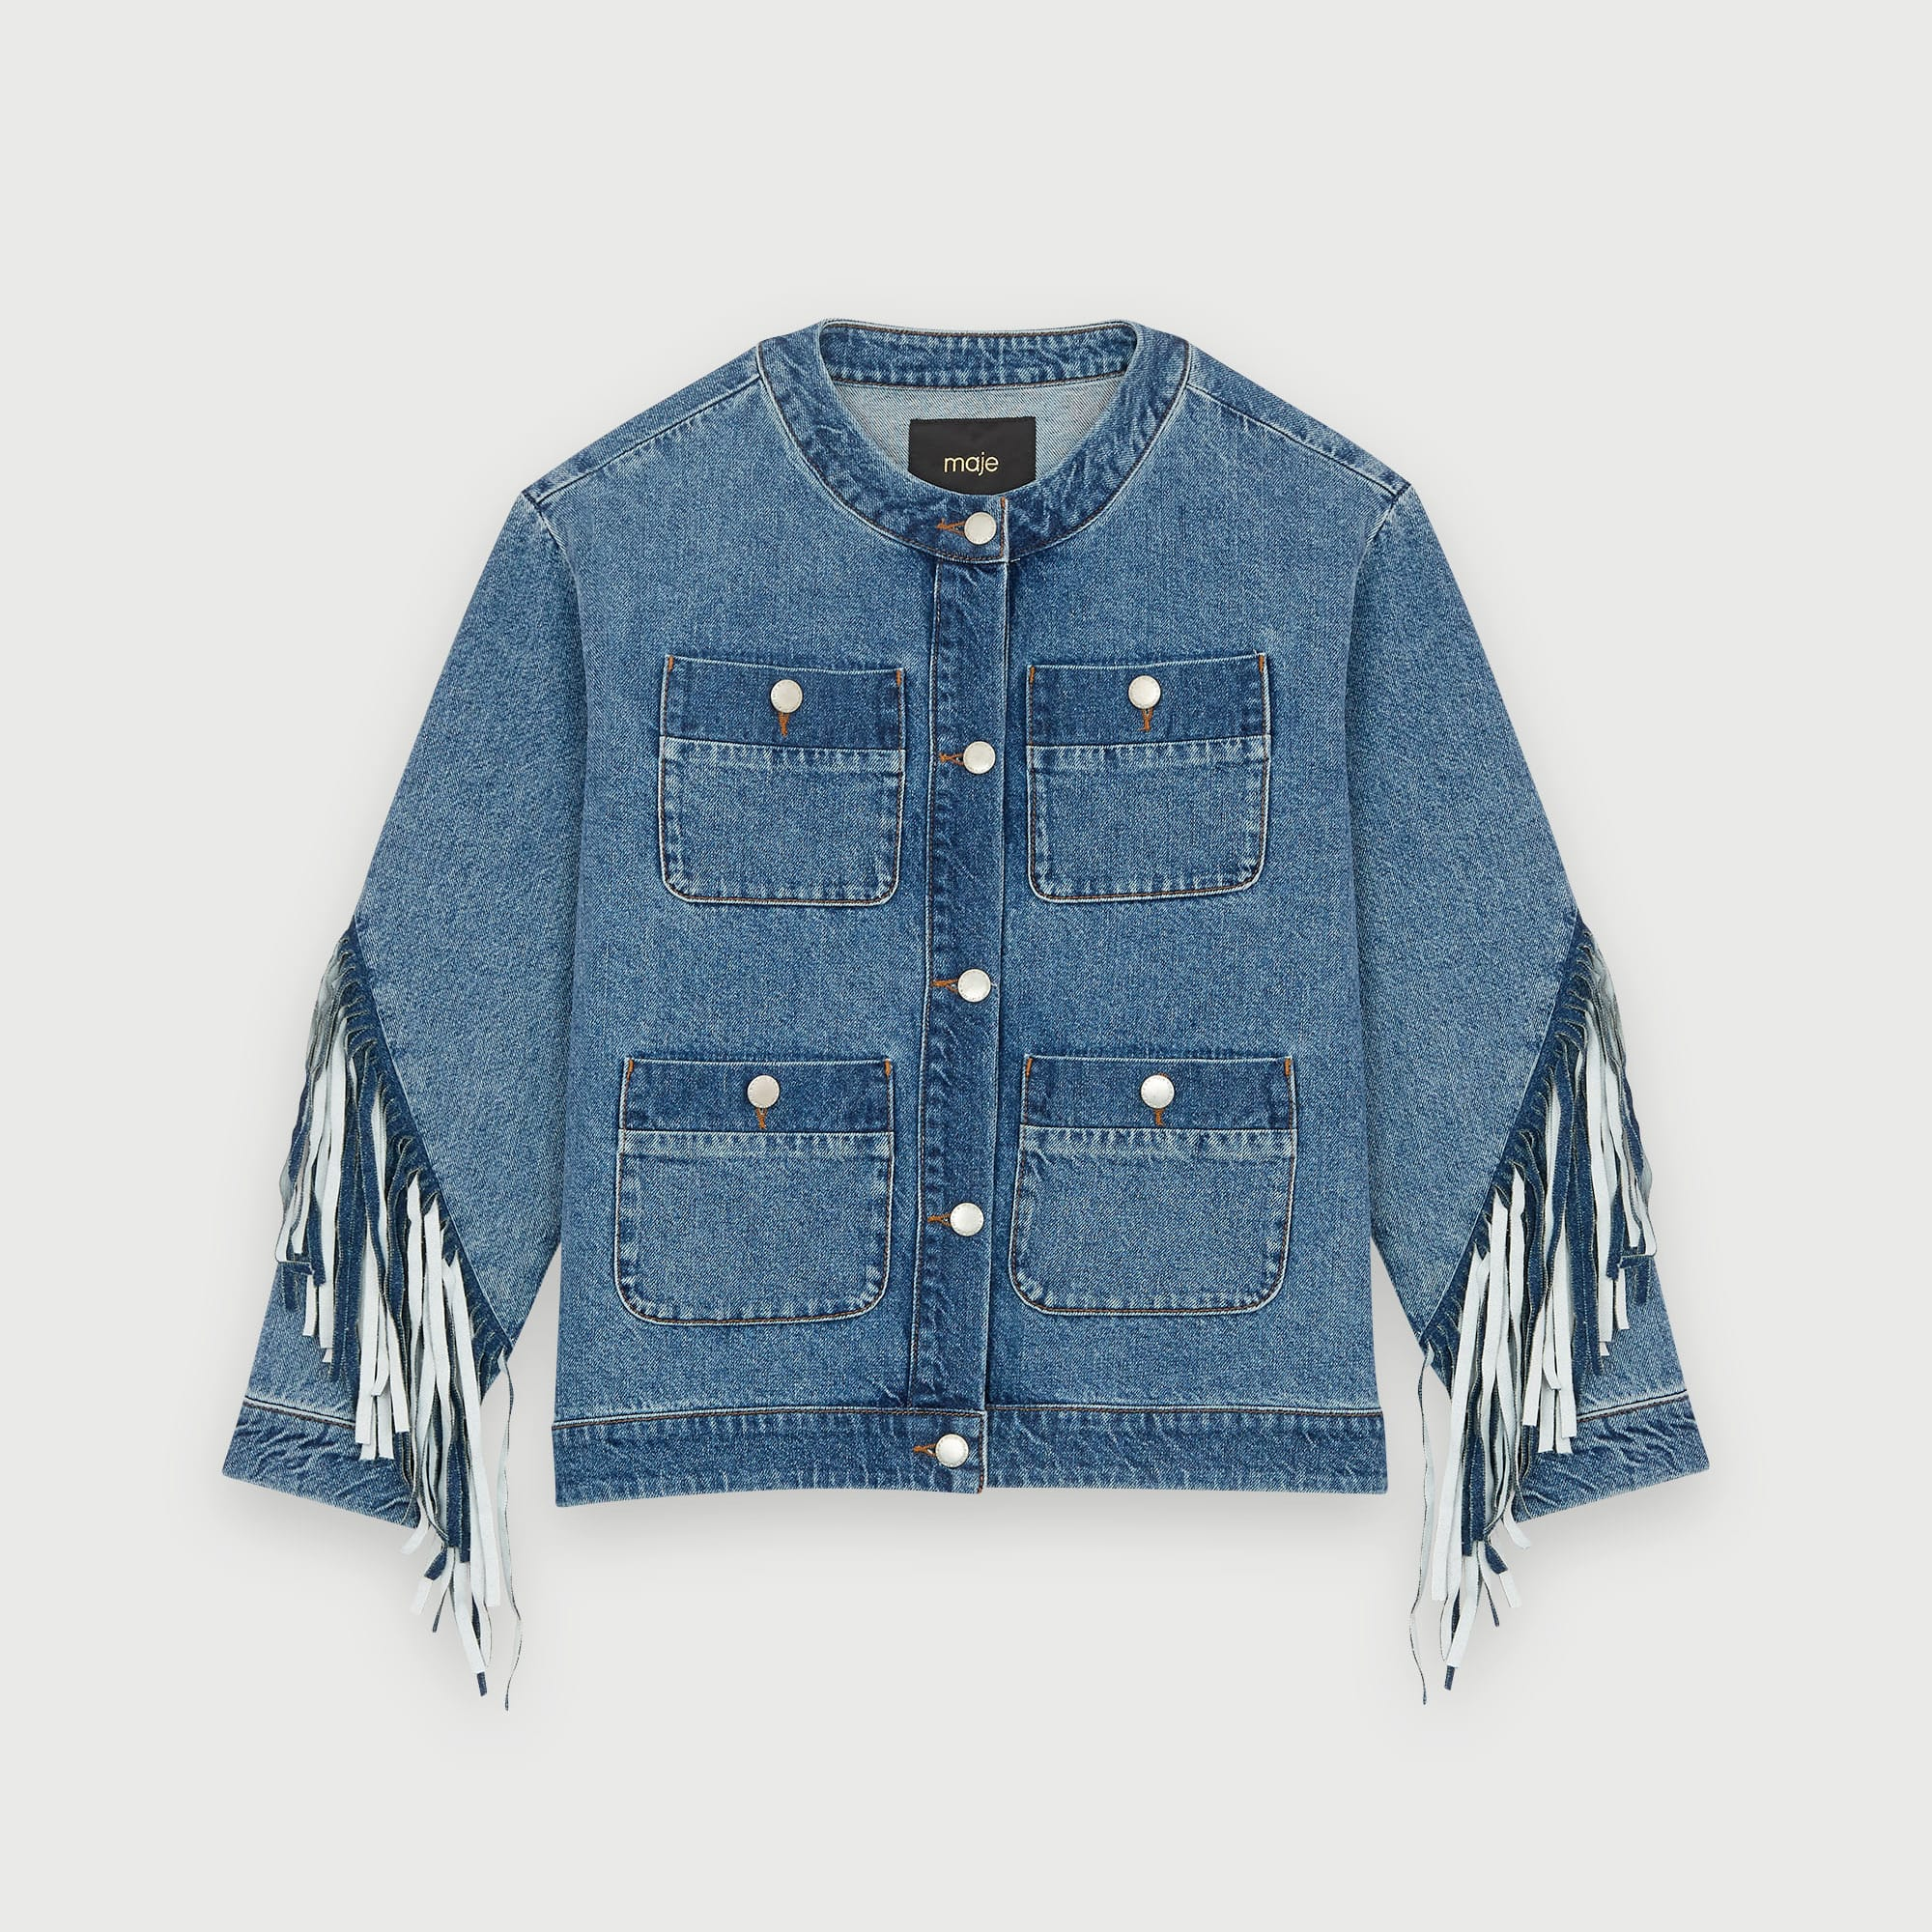 maje-denim-jacket-with-fringe